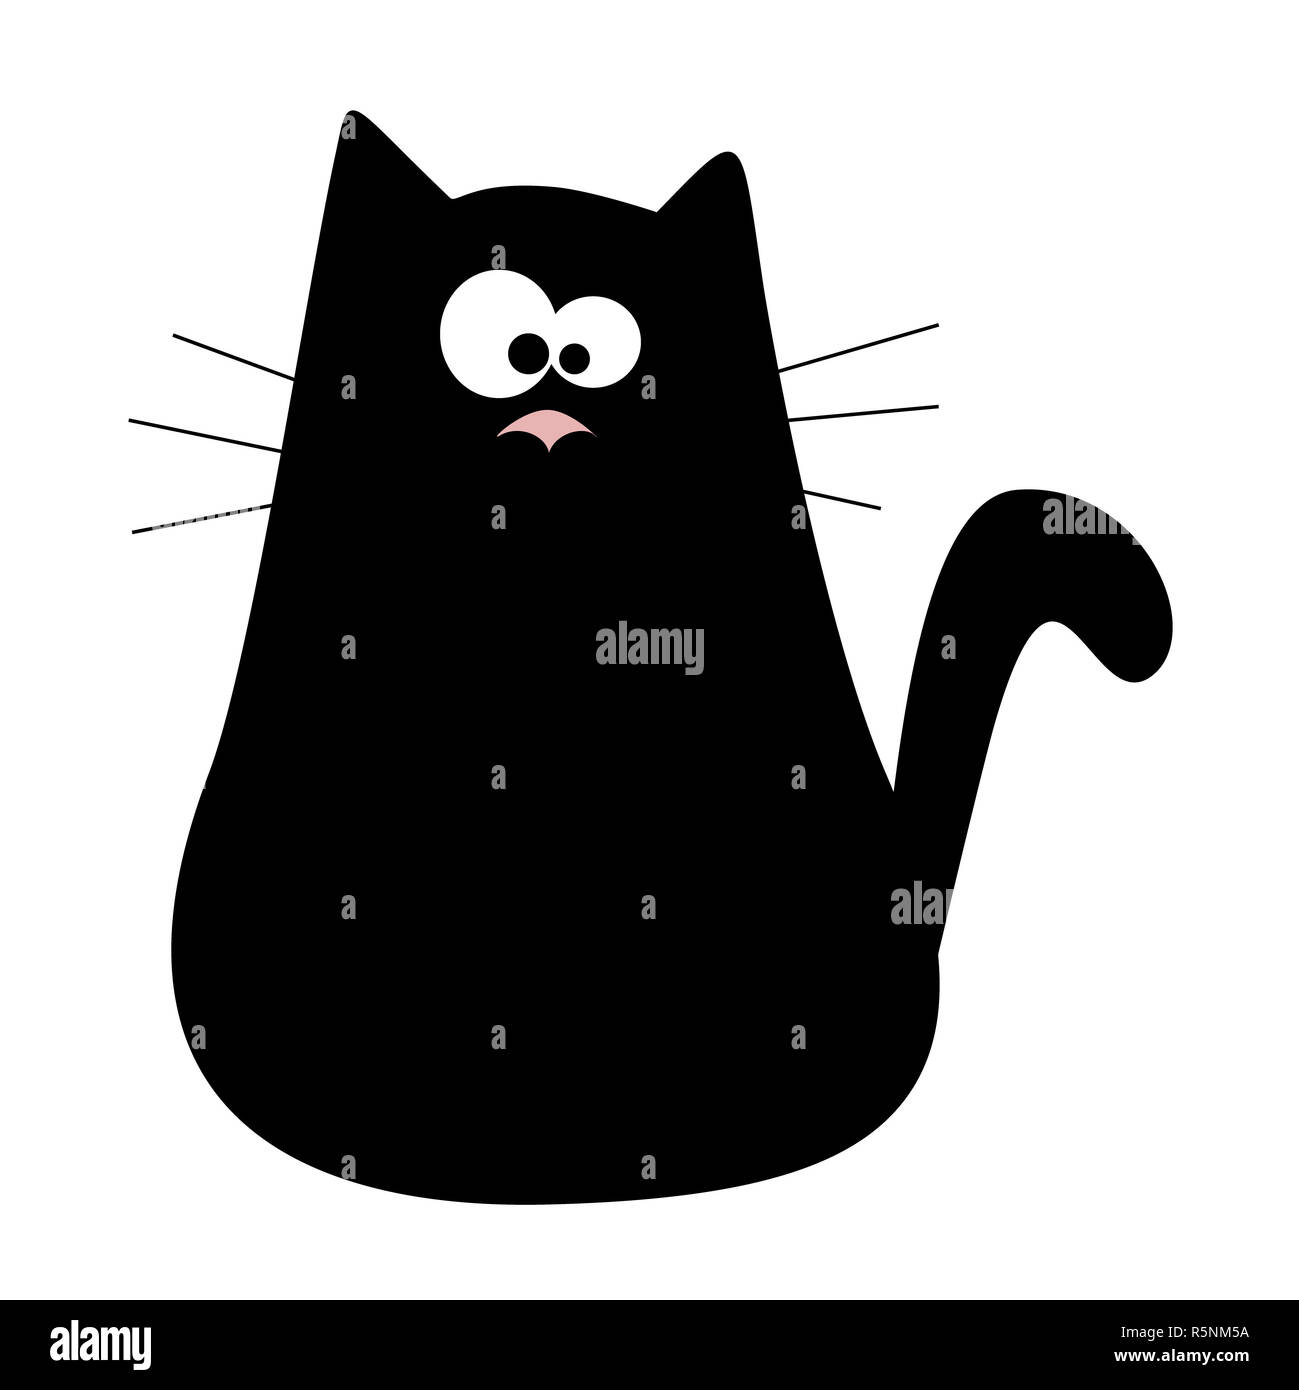 Cute cartoon black cat logo. Kids illustration with domestic animal. Lovely pet - Stock Image